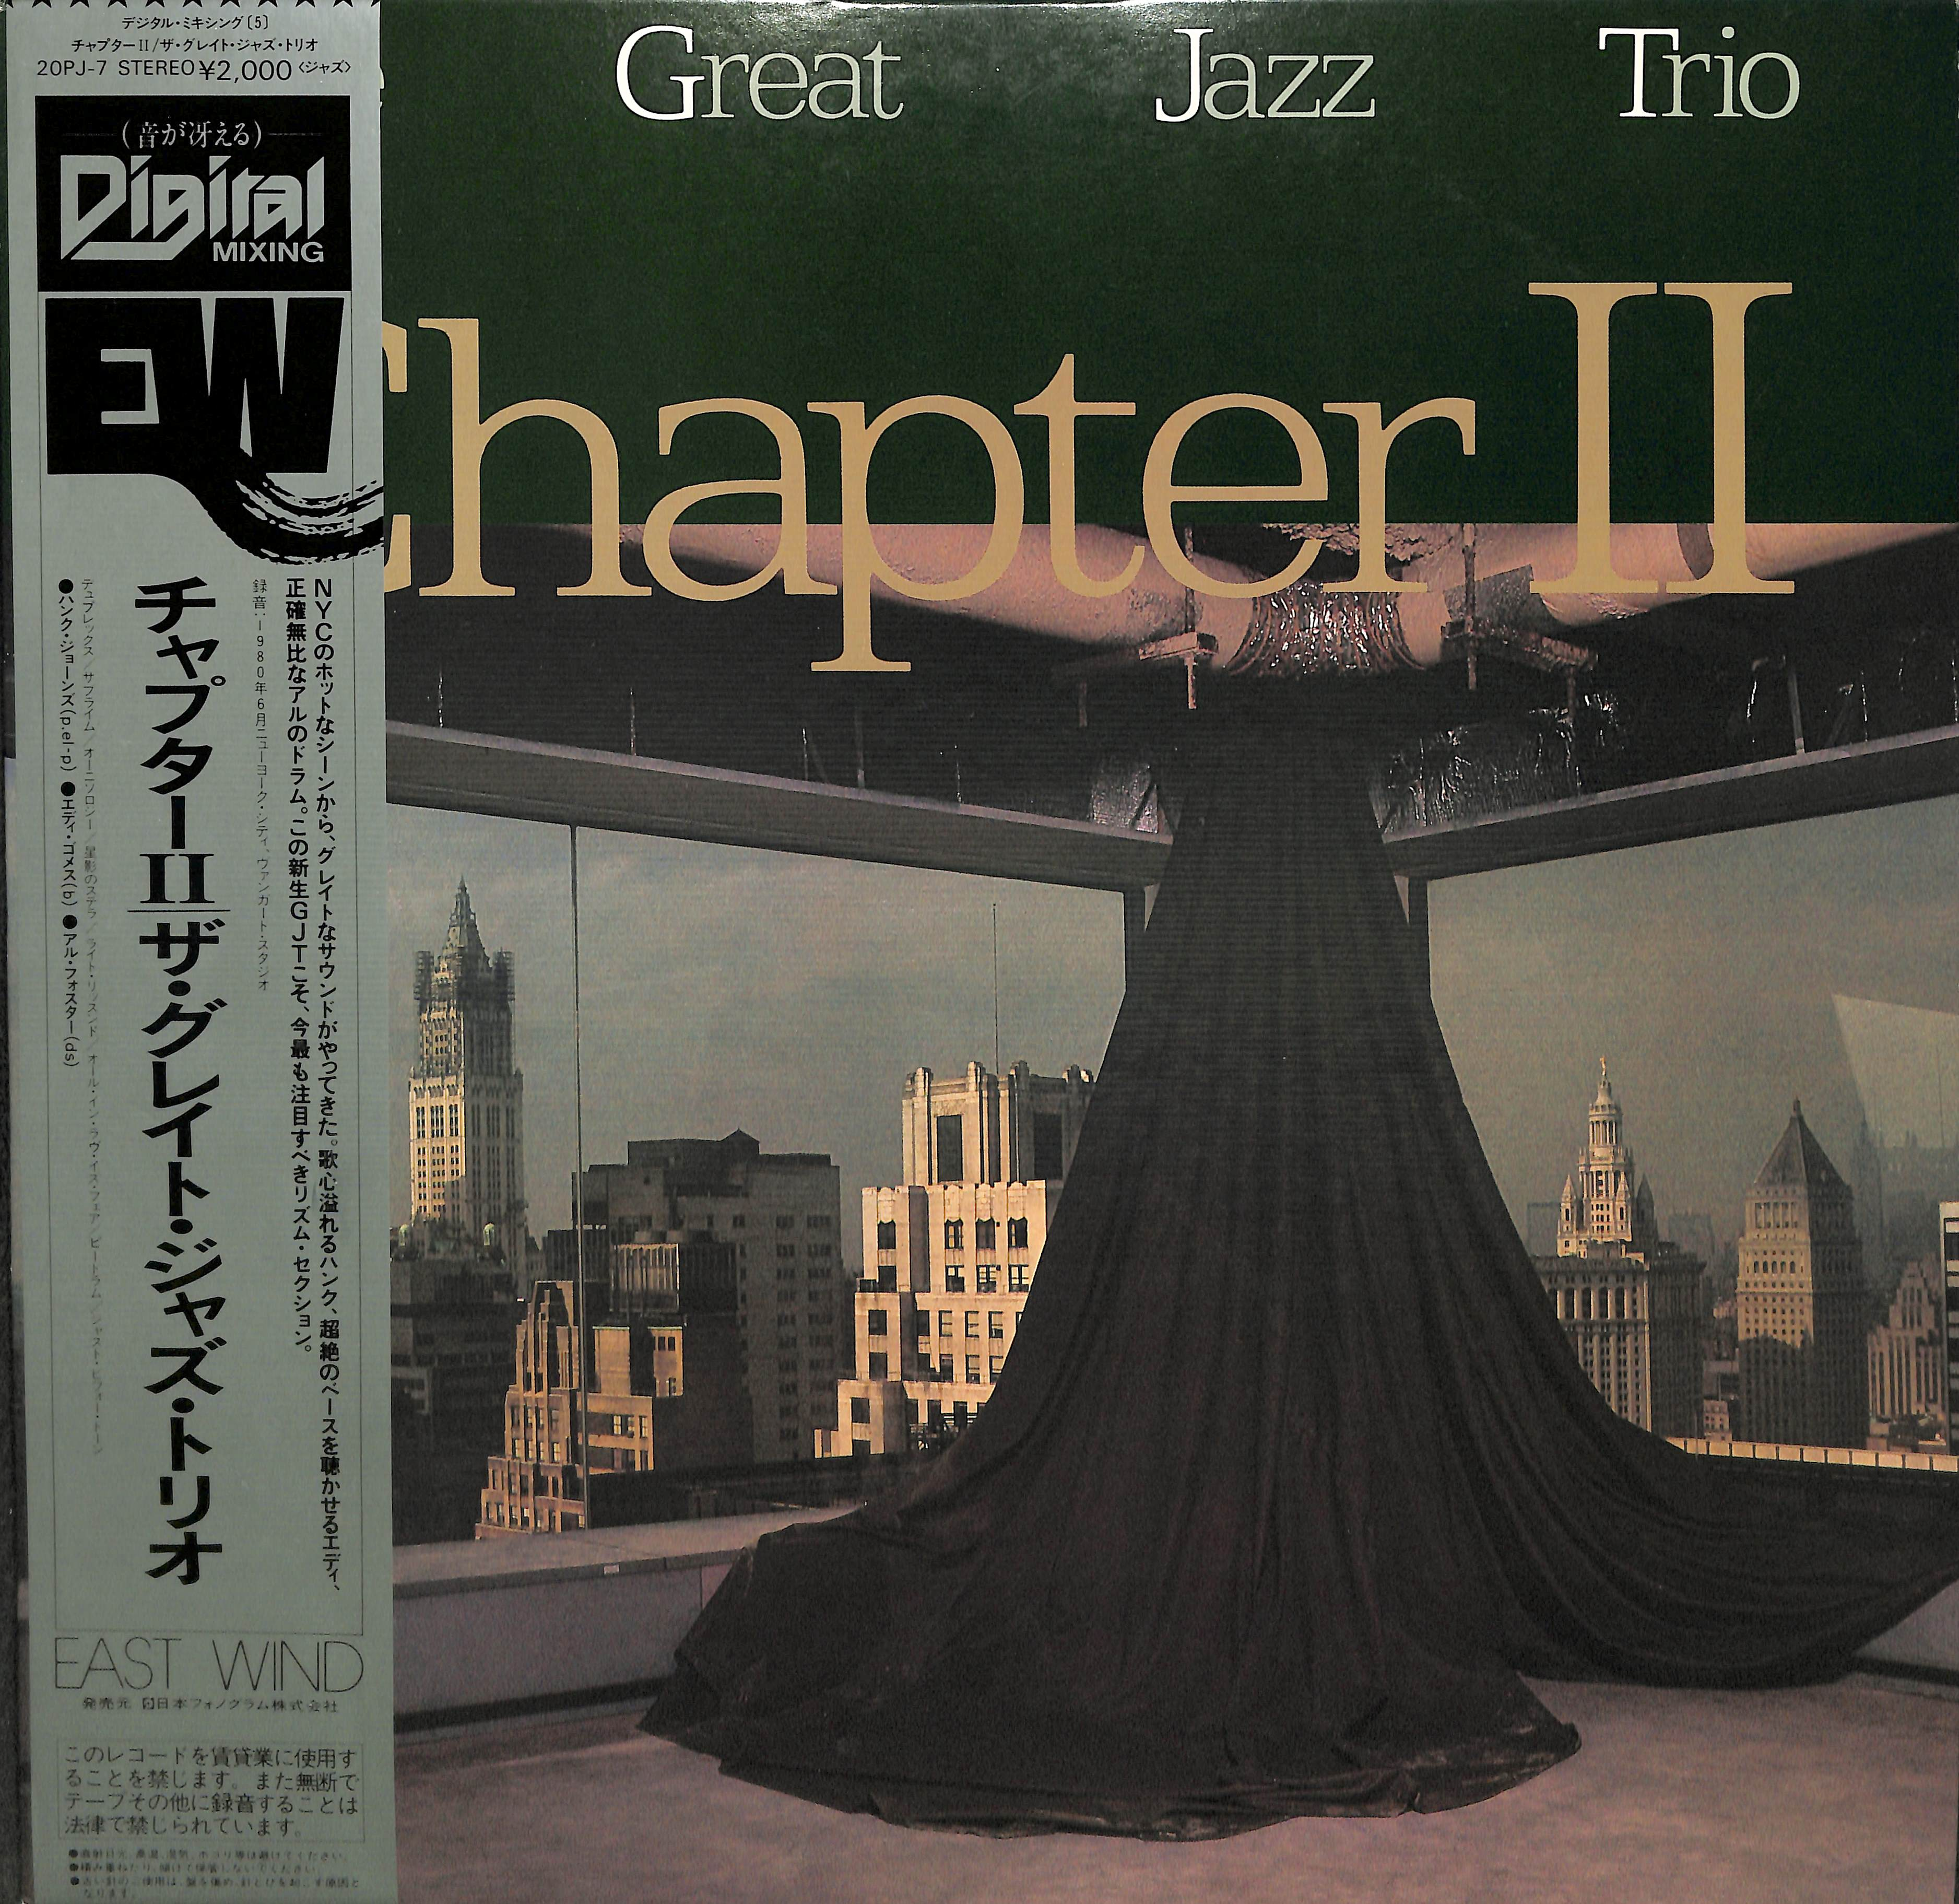 GREAT JAZZ TRIO - Chapter II: 2 - LP